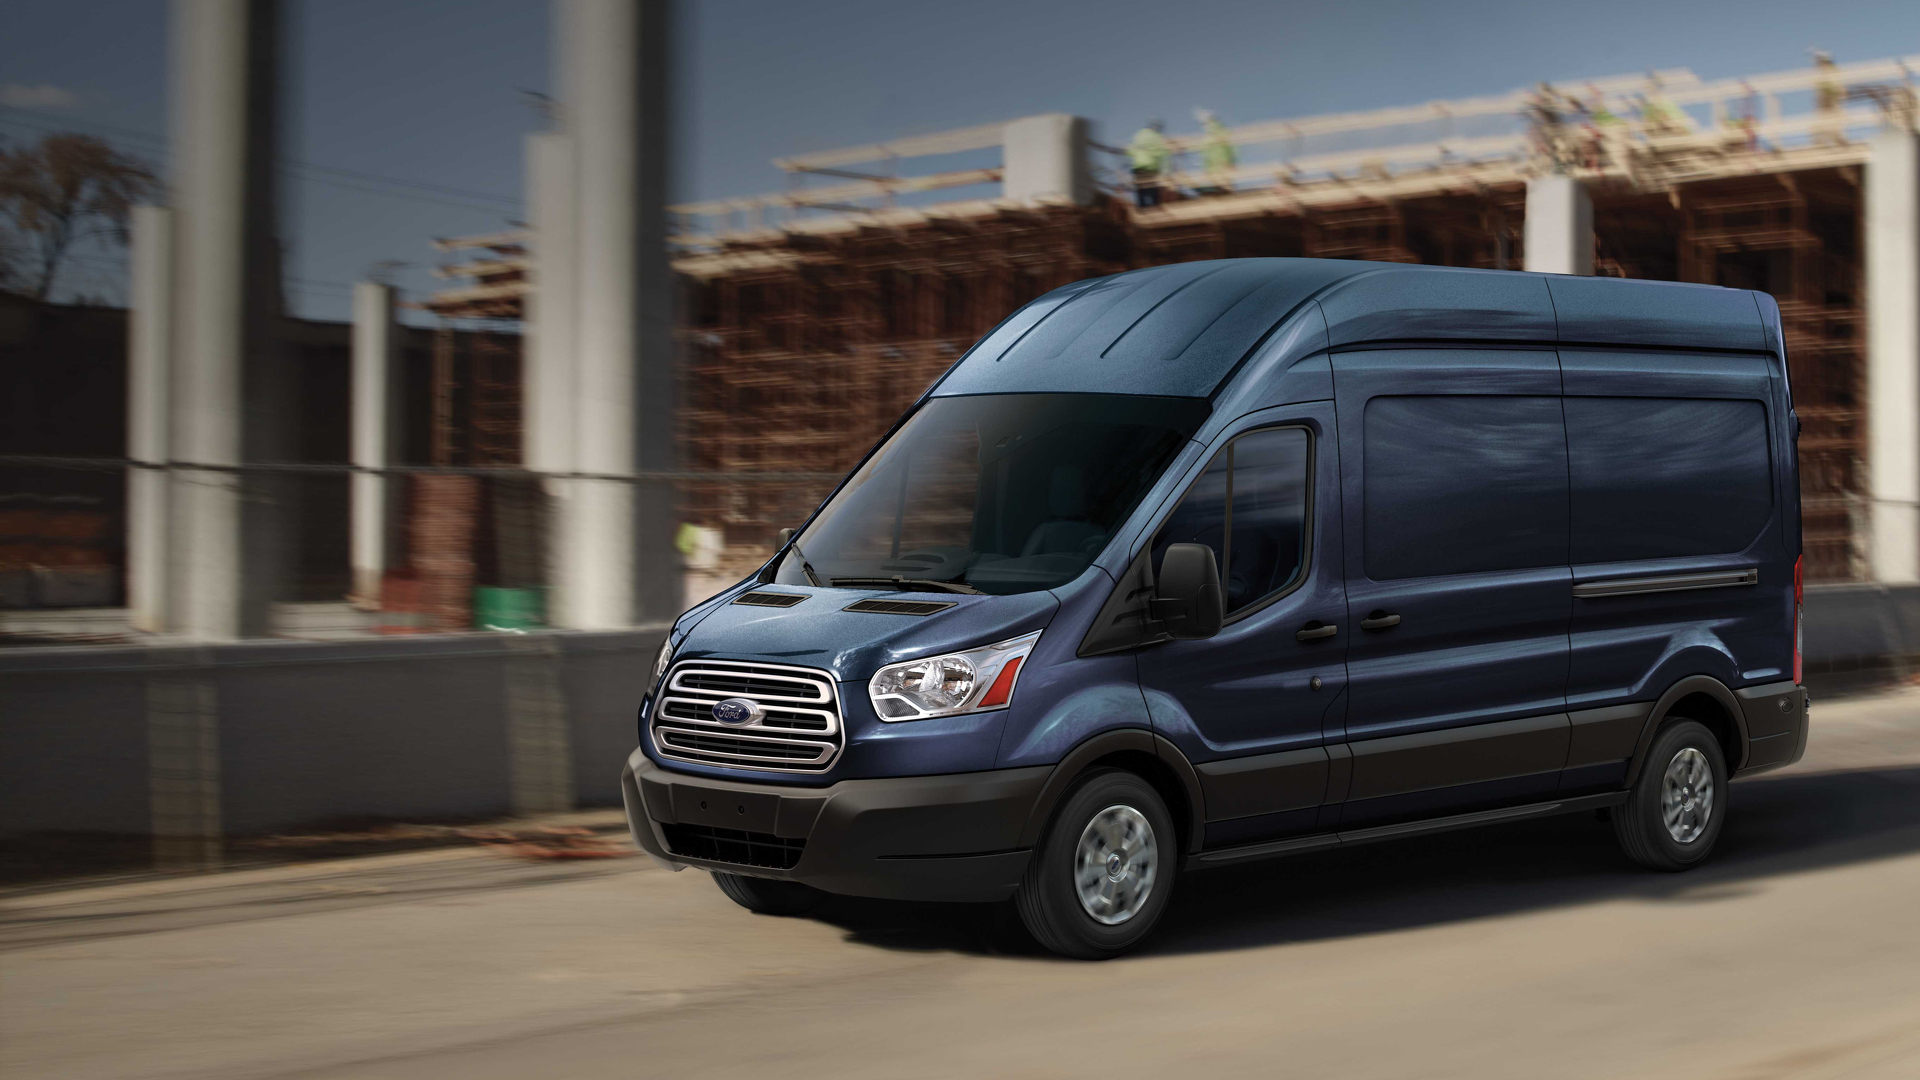 Ford Transit News and Reviews | Motor1.com